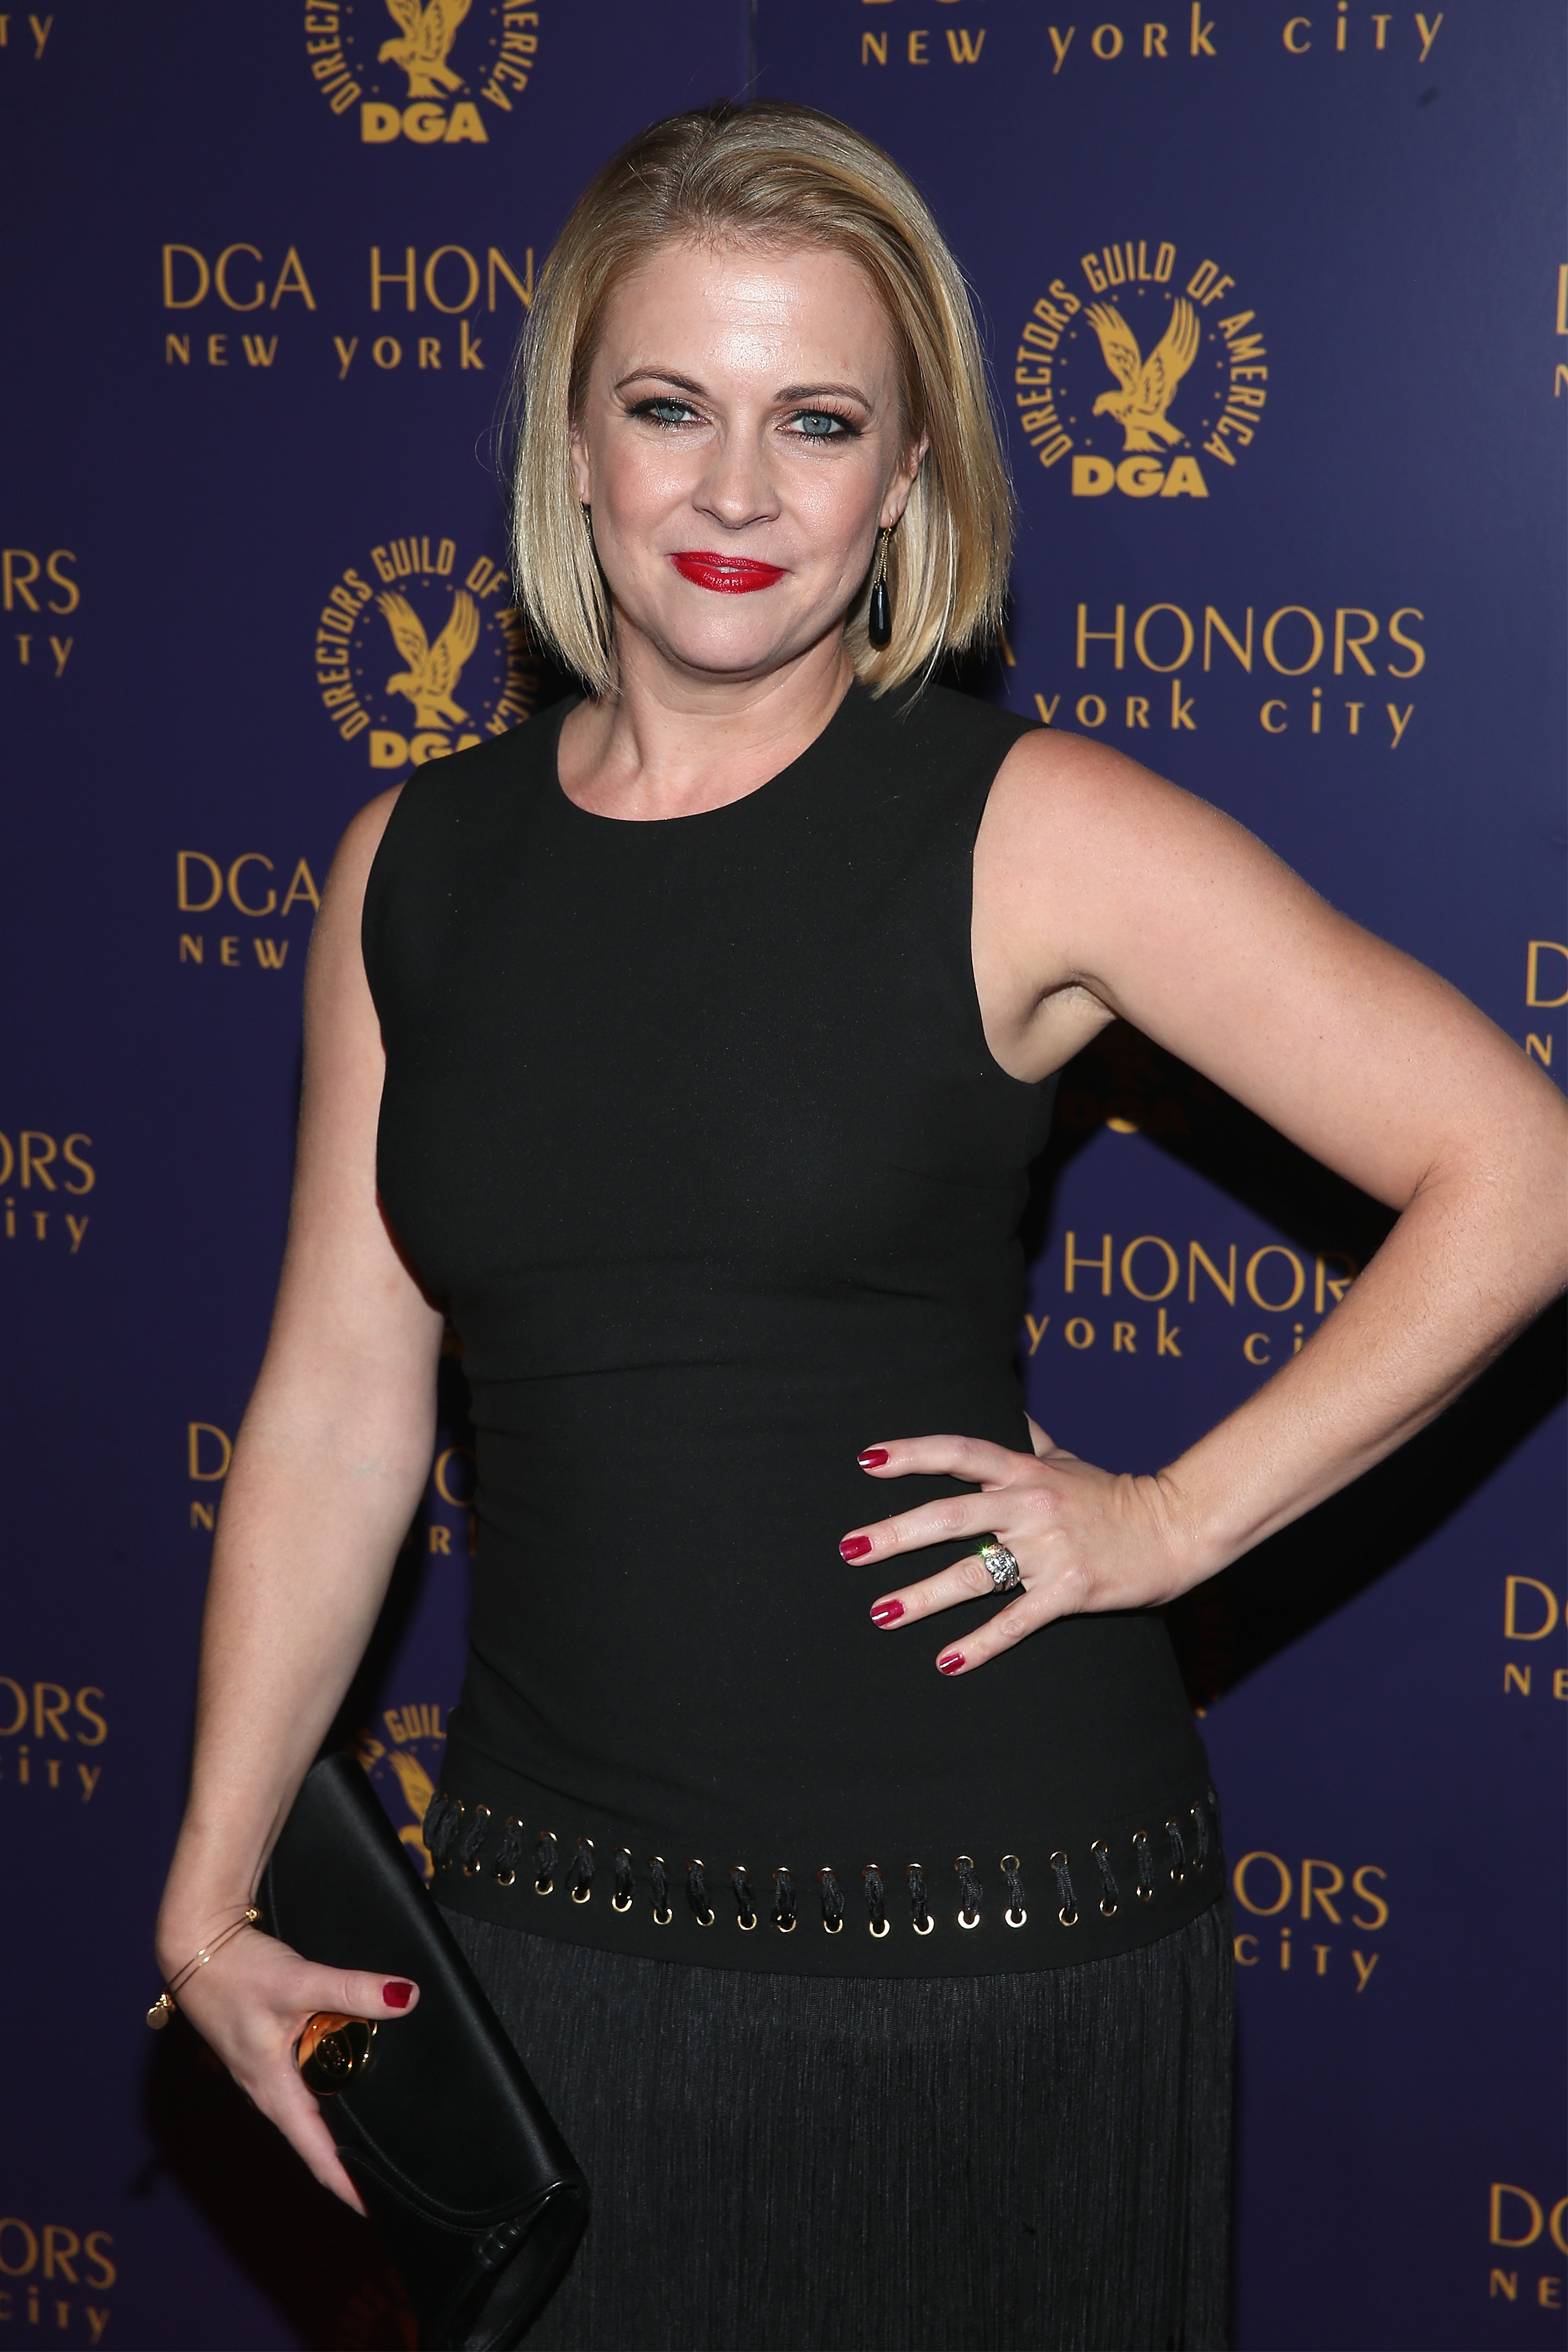 Melissa Joan Hart Just Shared A Photo of Her Bikini Body, and She Looks Fantastic